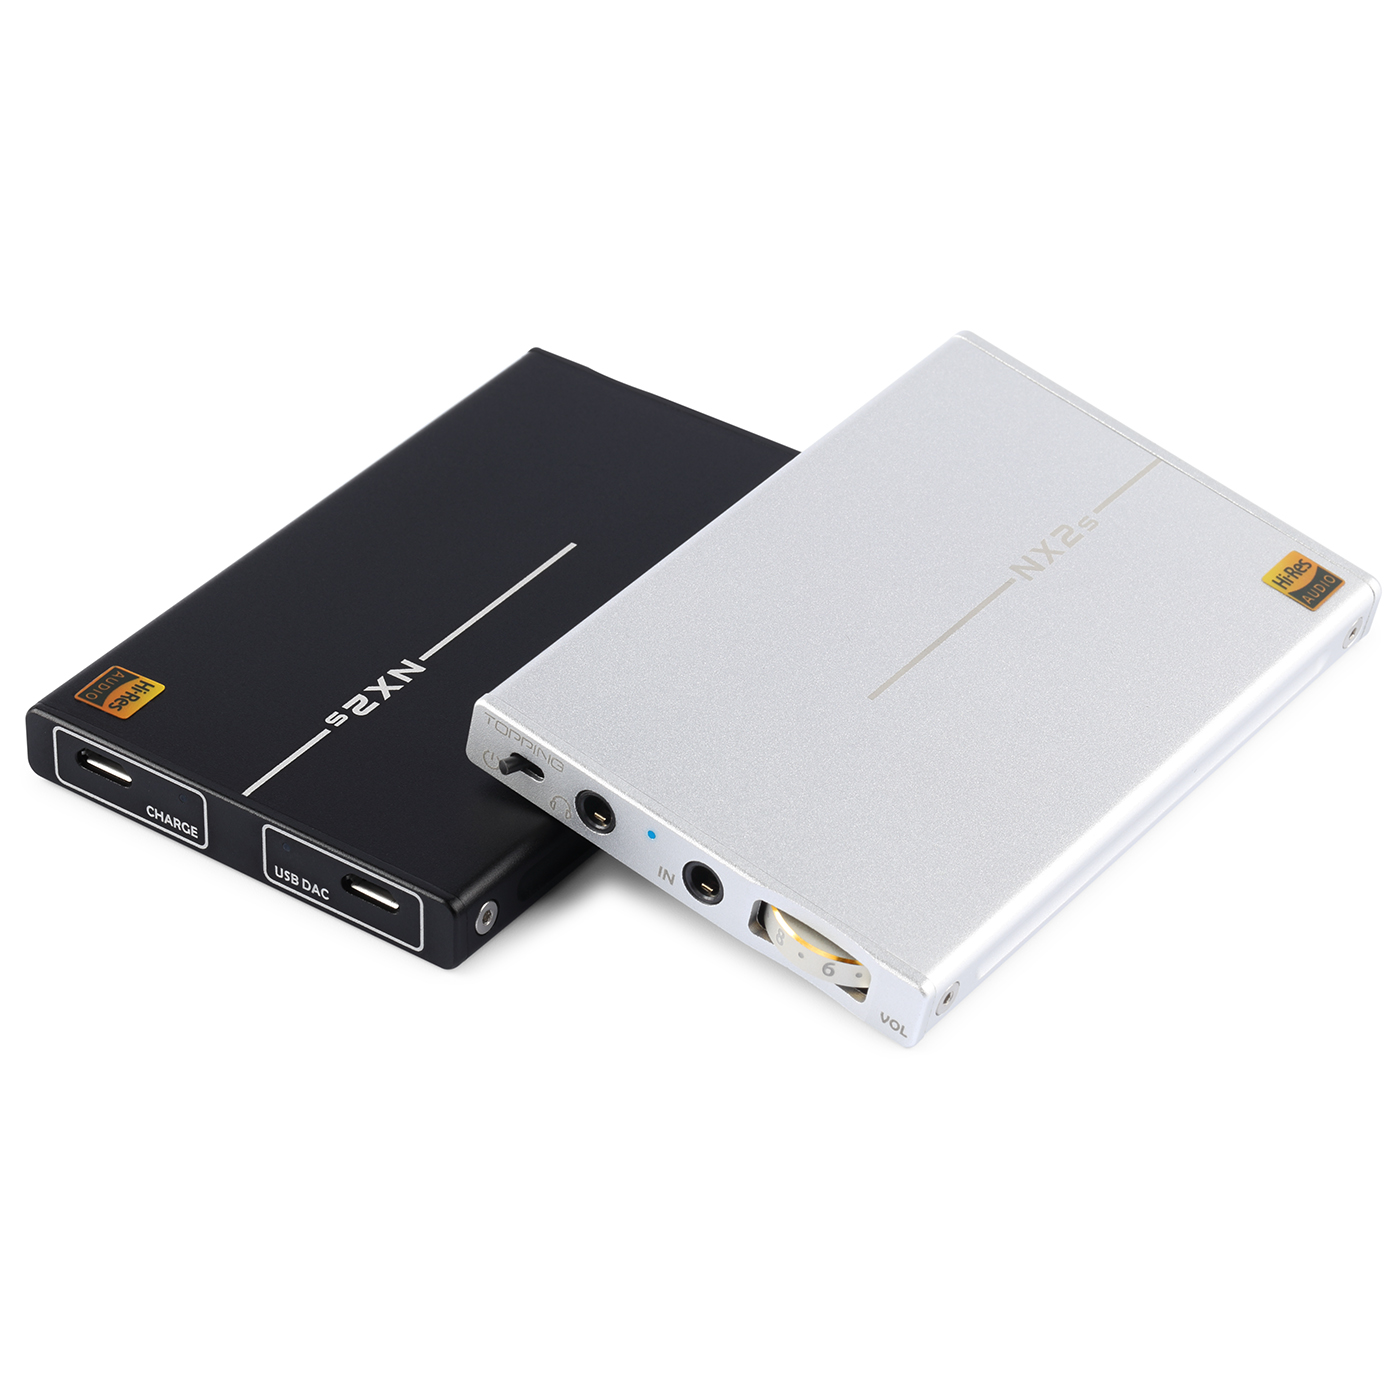 TOPPING NX2S Hi-Res HIFI USB DAC Portable Headphone Amplifier AMP LMH6643+OPA1652 for iPod/Android/mp3 Player/PC/ iMac цена и фото